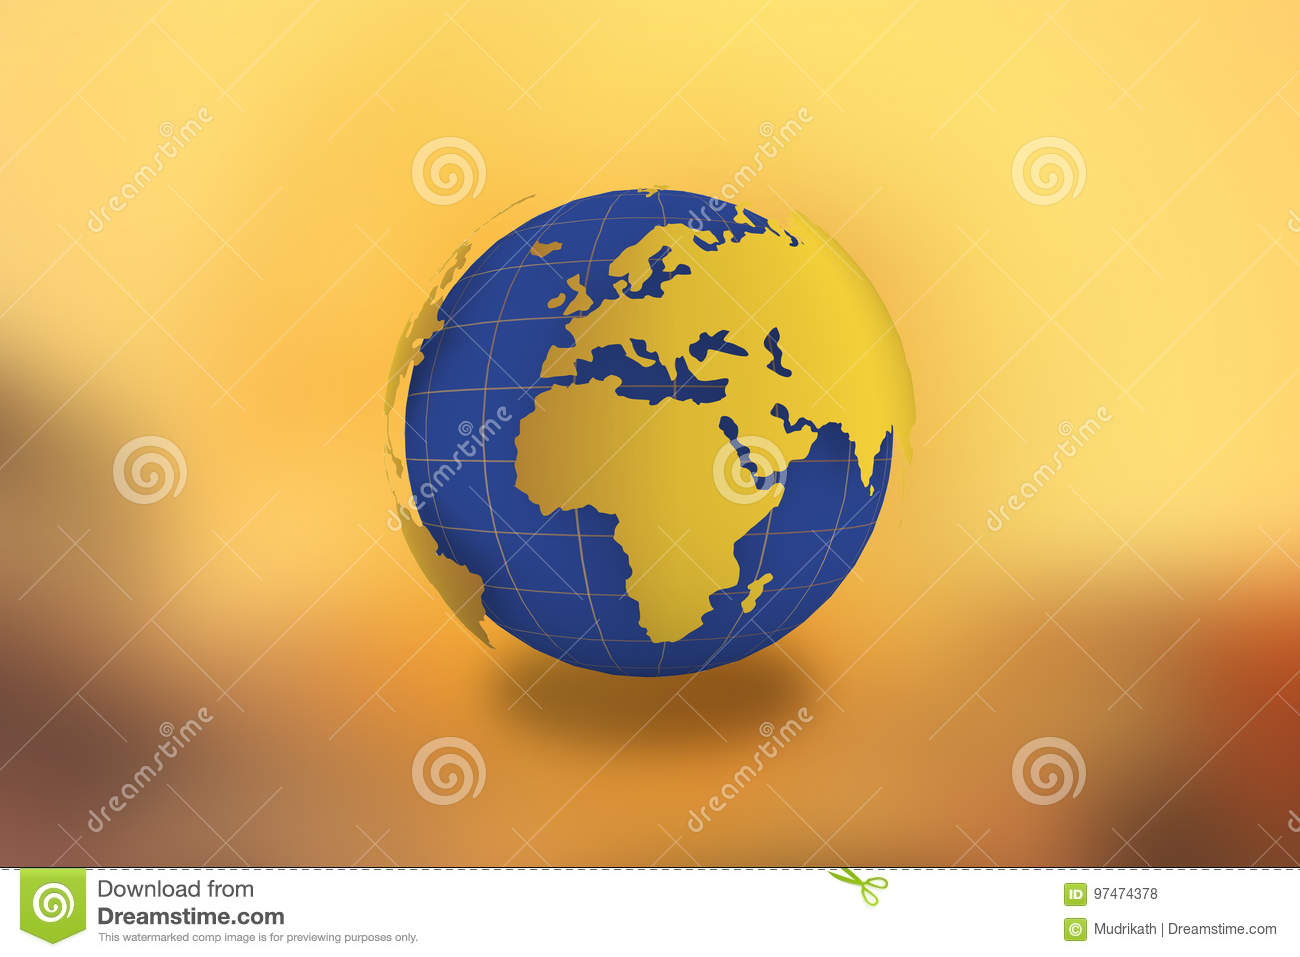 World map globe in golden background 21 july 2017 stock download world map globe in golden background 21 july 2017 stock illustration illustration gumiabroncs Image collections